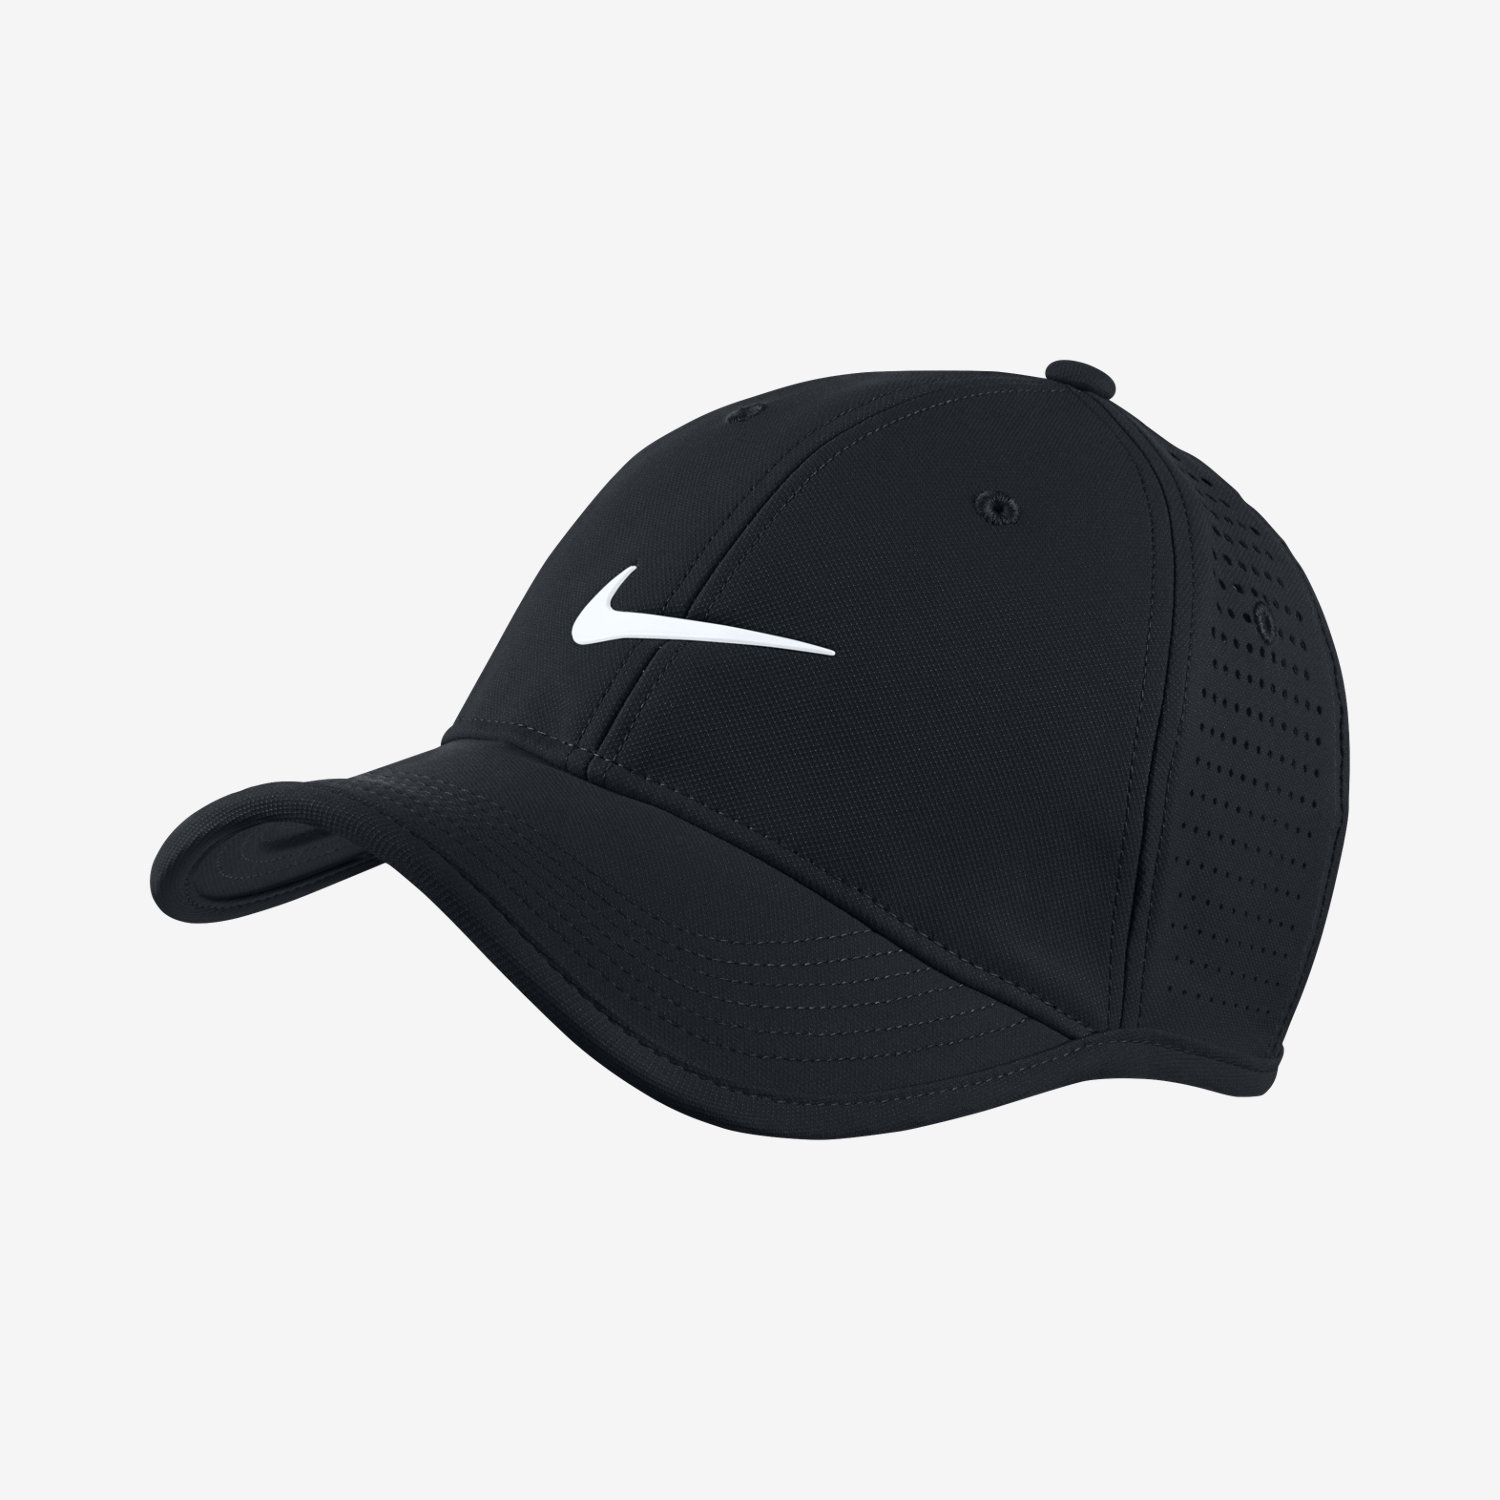 1ecaeda5f8bb Nike Cap No Top custard-online.co.uk